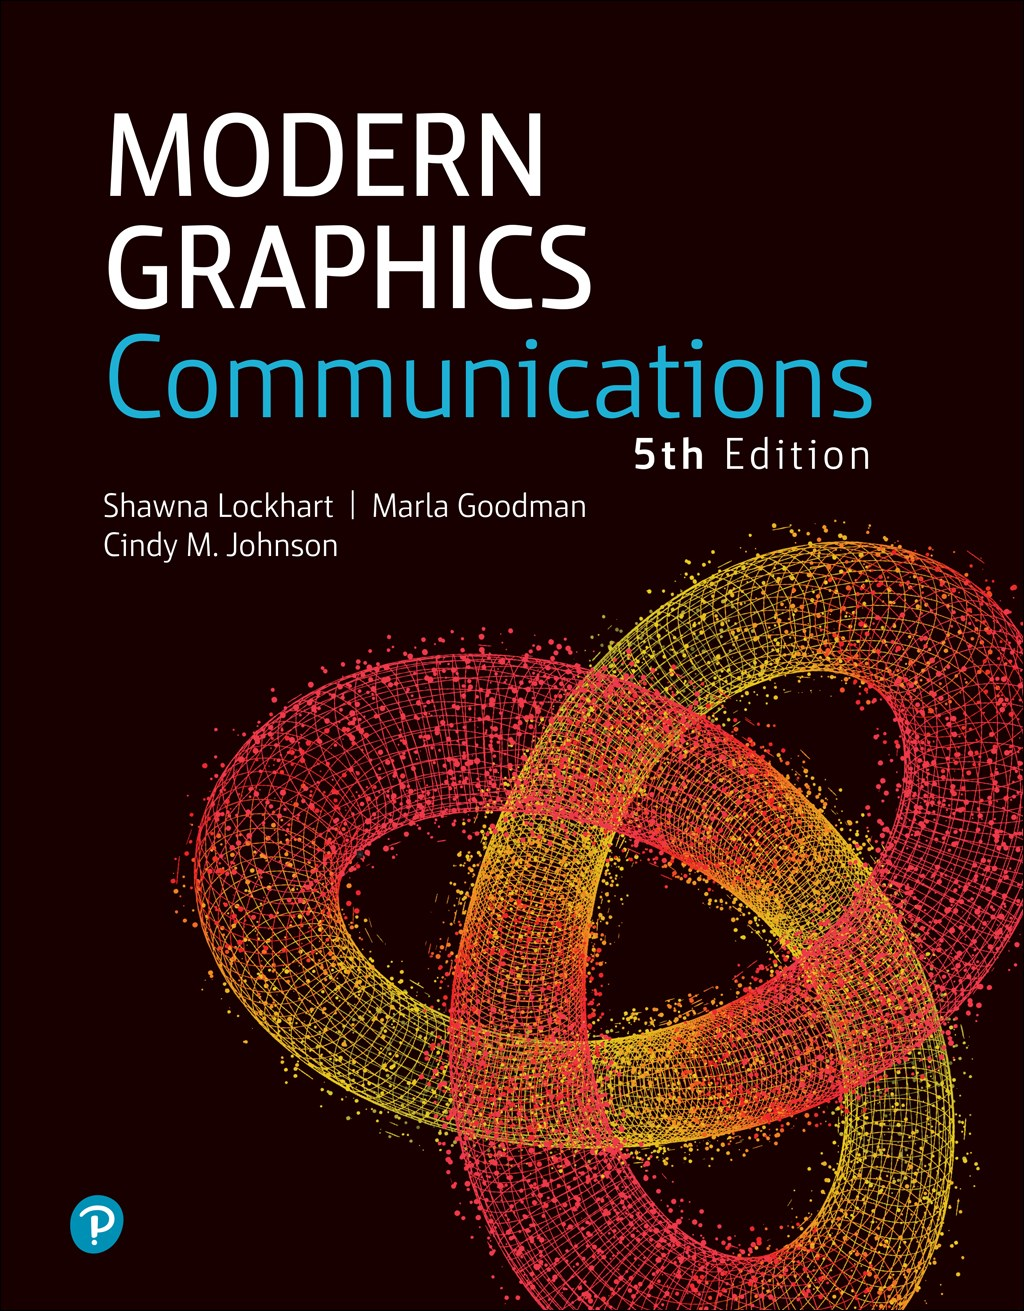 Modern Graphics Communication, 5th Edition